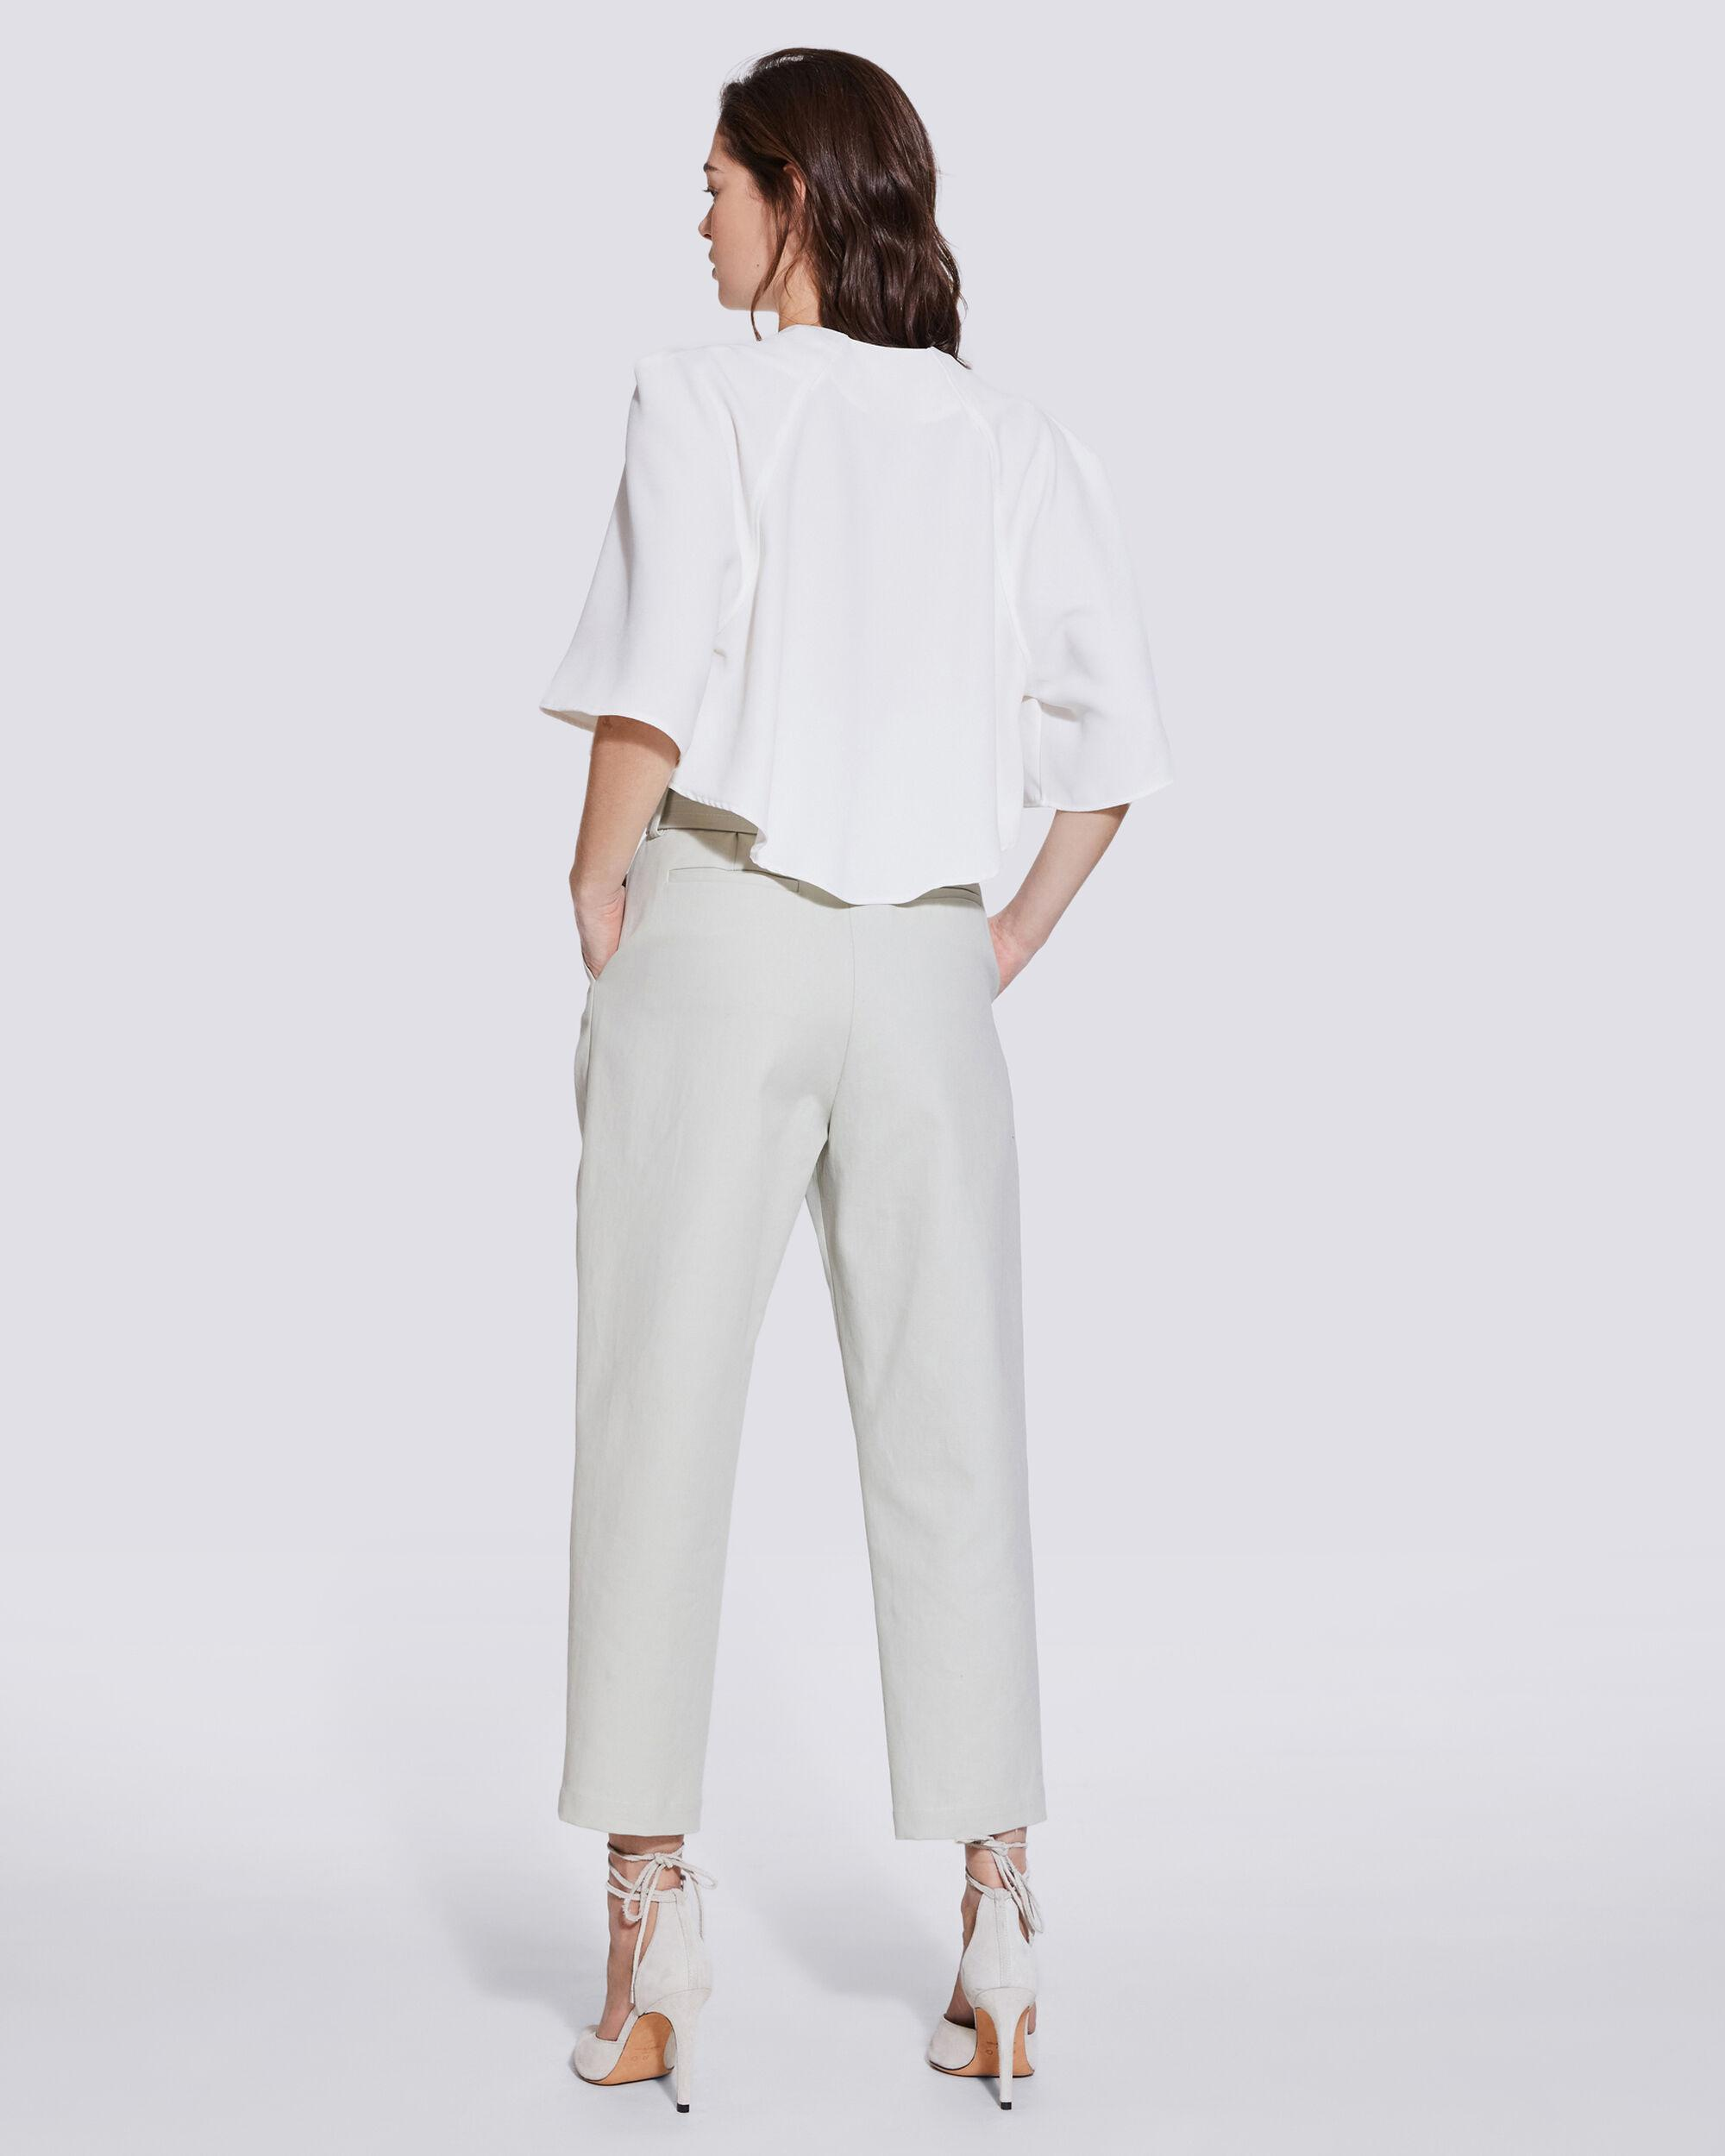 LATOD PLEATED CROPPED V NECK TOP 3